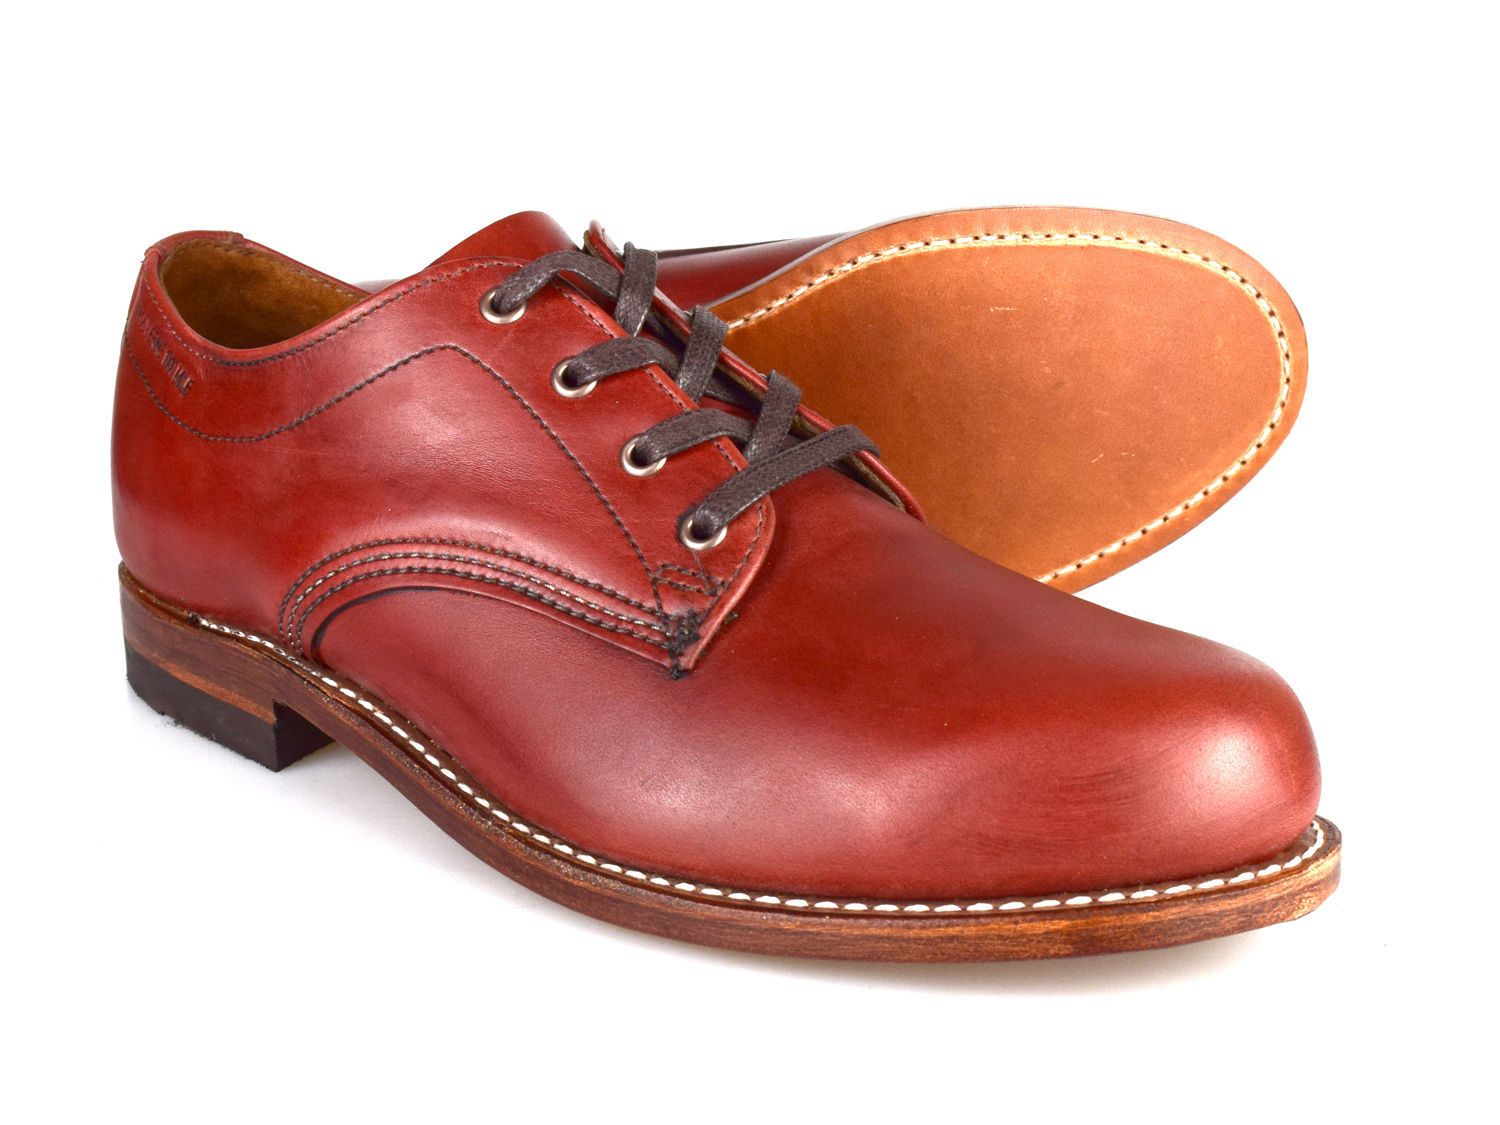 58765571b28 Details about Wolverine 1000 Miles Oxford Welted Horween Leather Brown Mens  Shoes RRP £395!